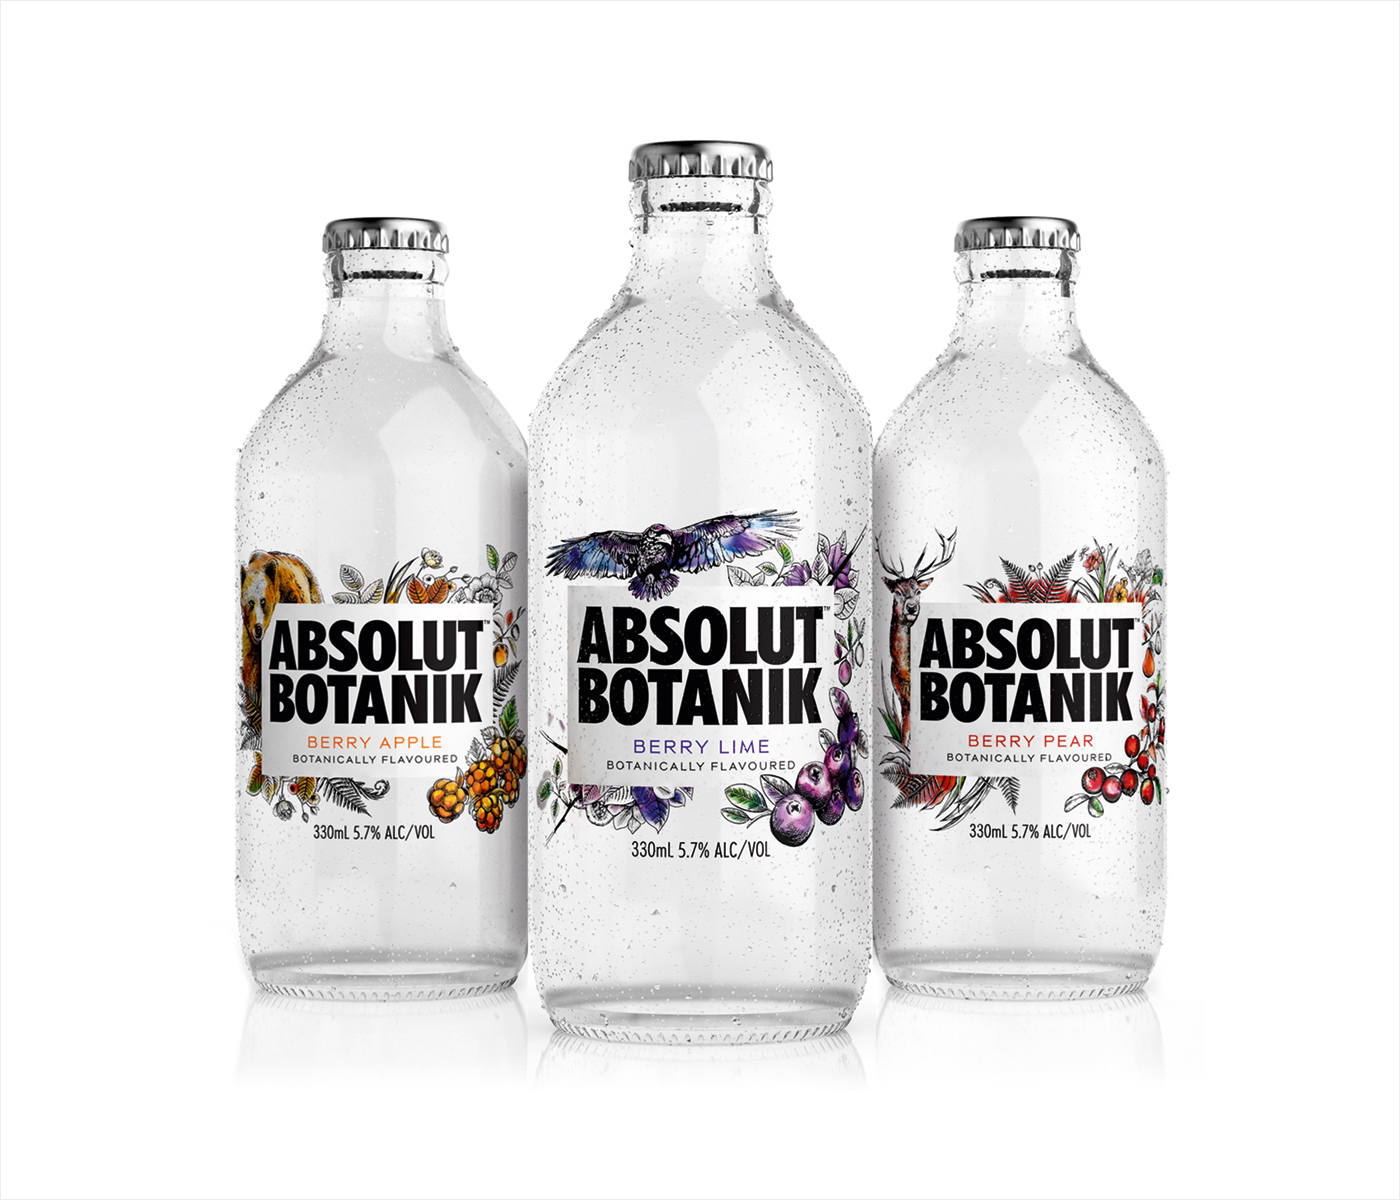 Packaging for Absolut Botanik by graphic design studio Bold Inc.